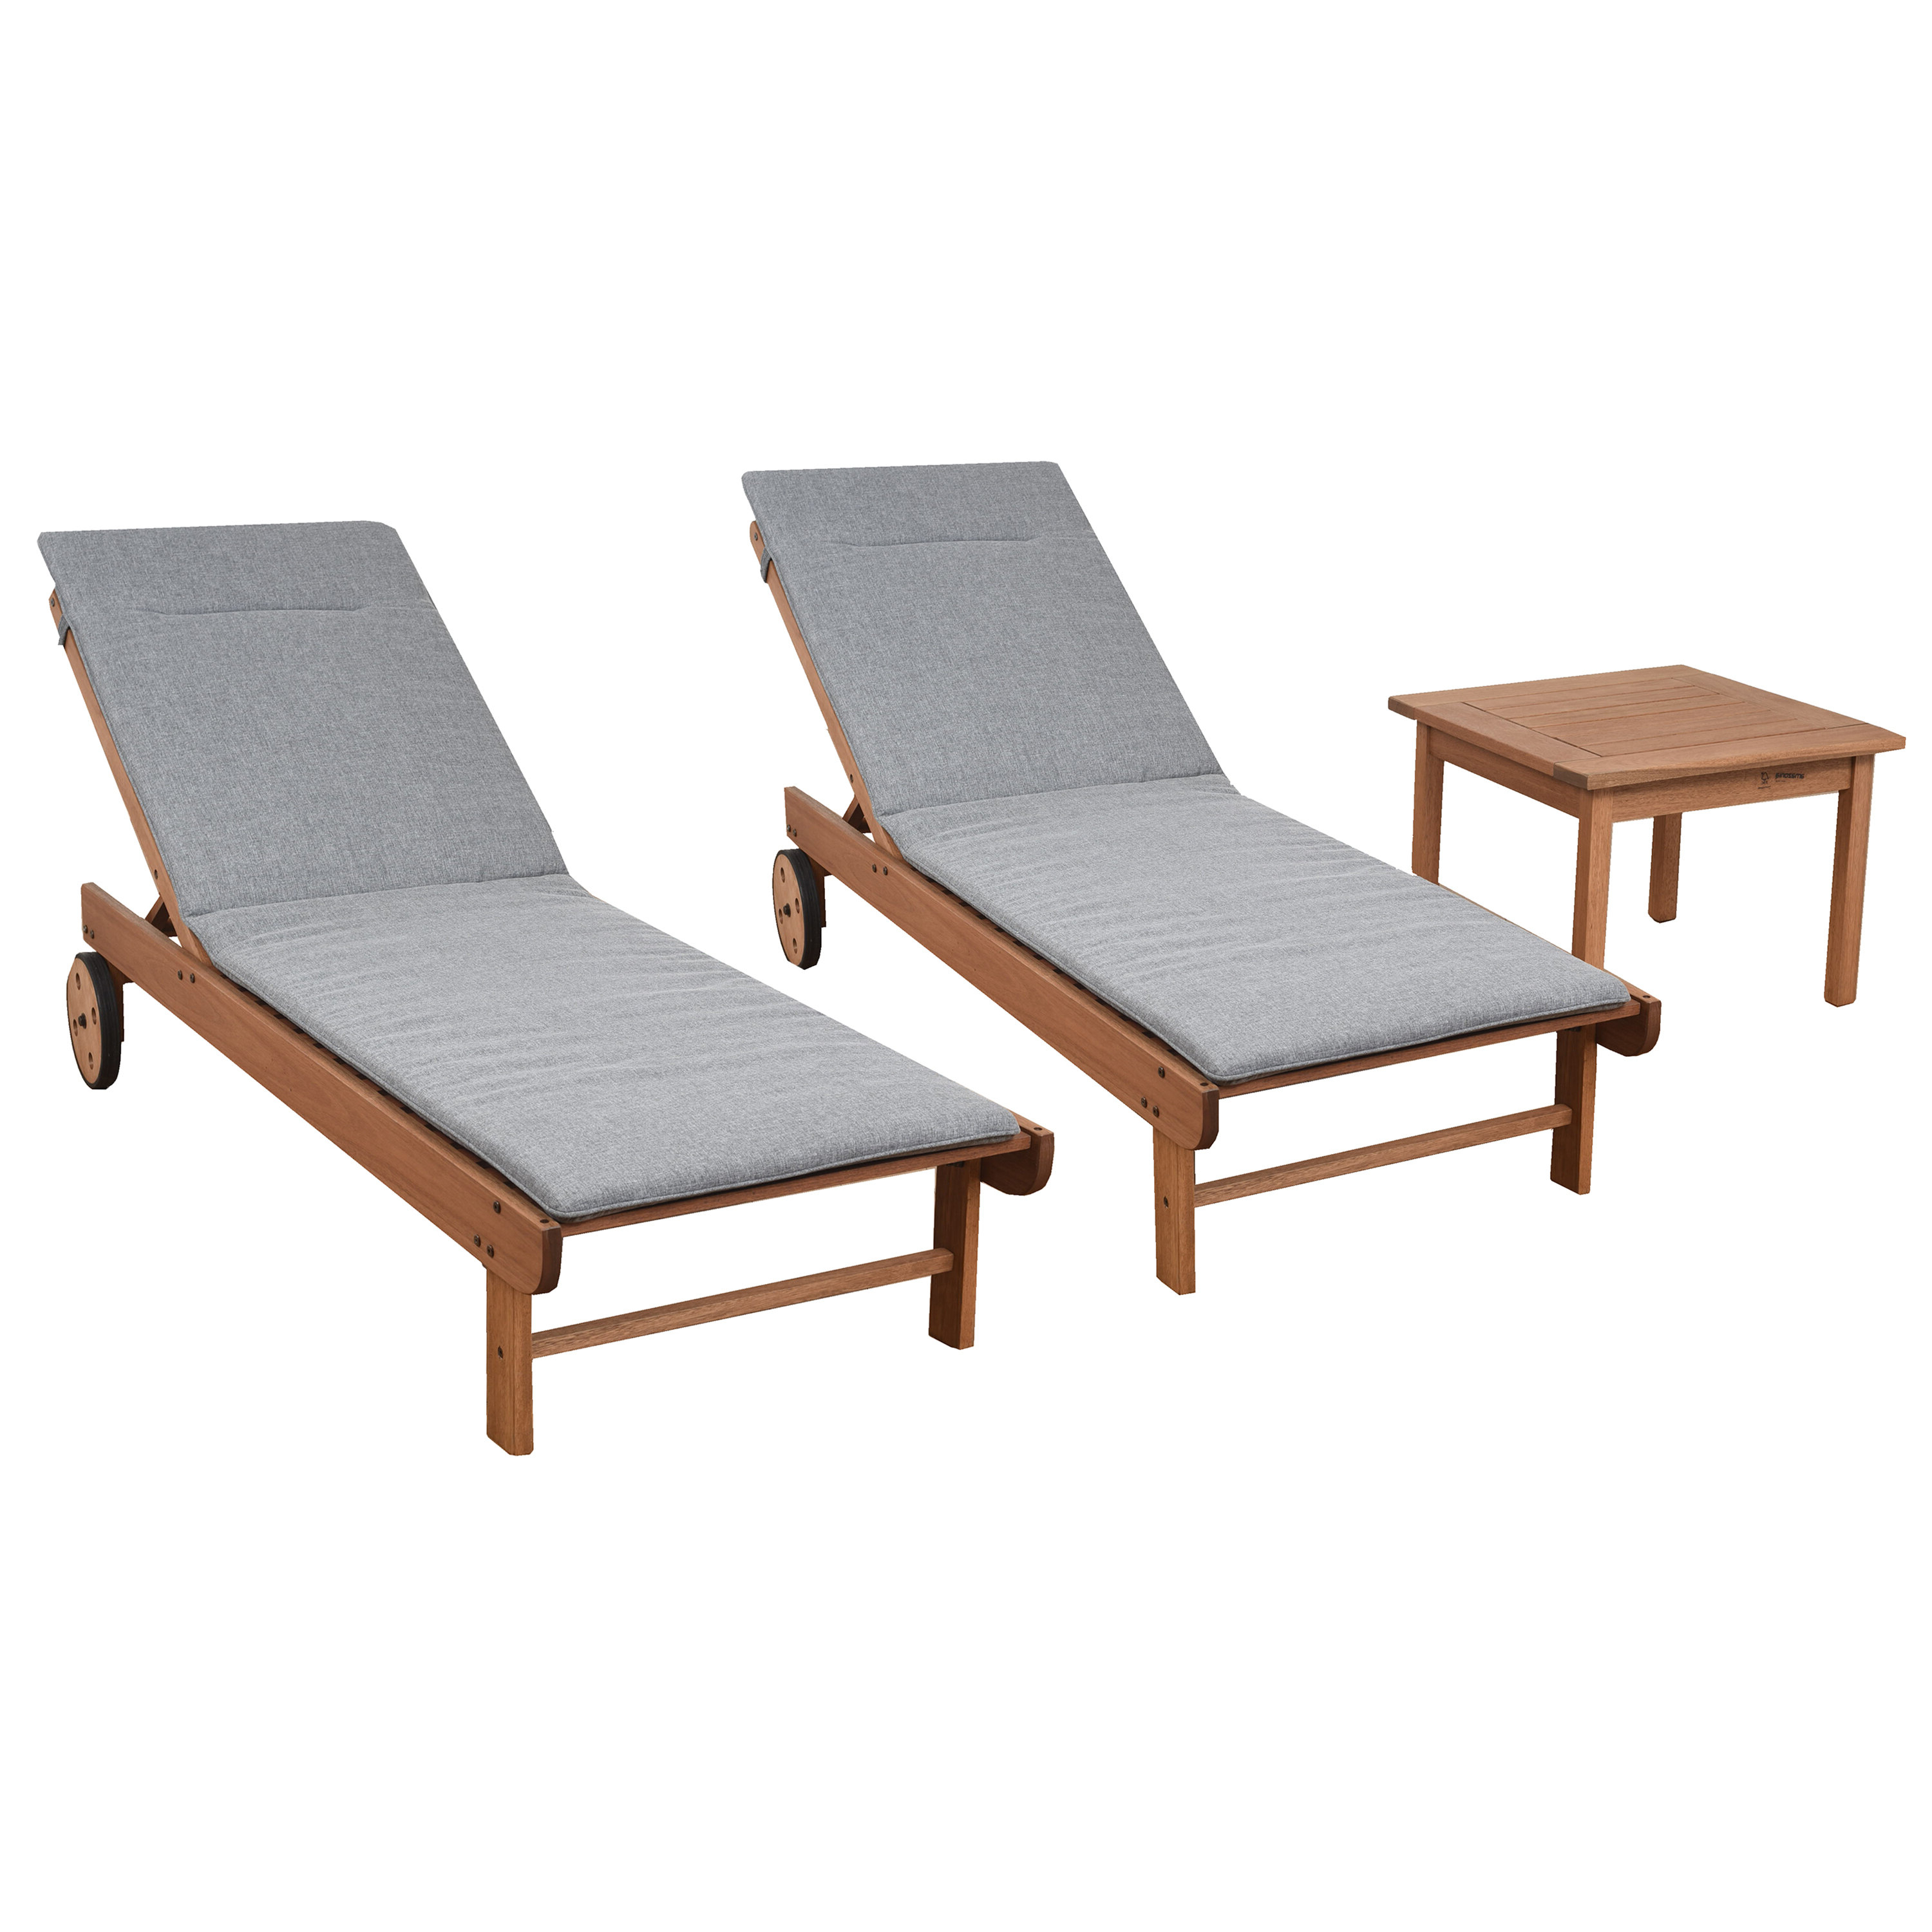 Brighton Gray Cushion Patio 3 Piece Single Reclining Chaise Lounge Set With Table For Widely Used Outdoor 3 Piece Acacia Wood Chaise Lounge Sets (View 6 of 25)